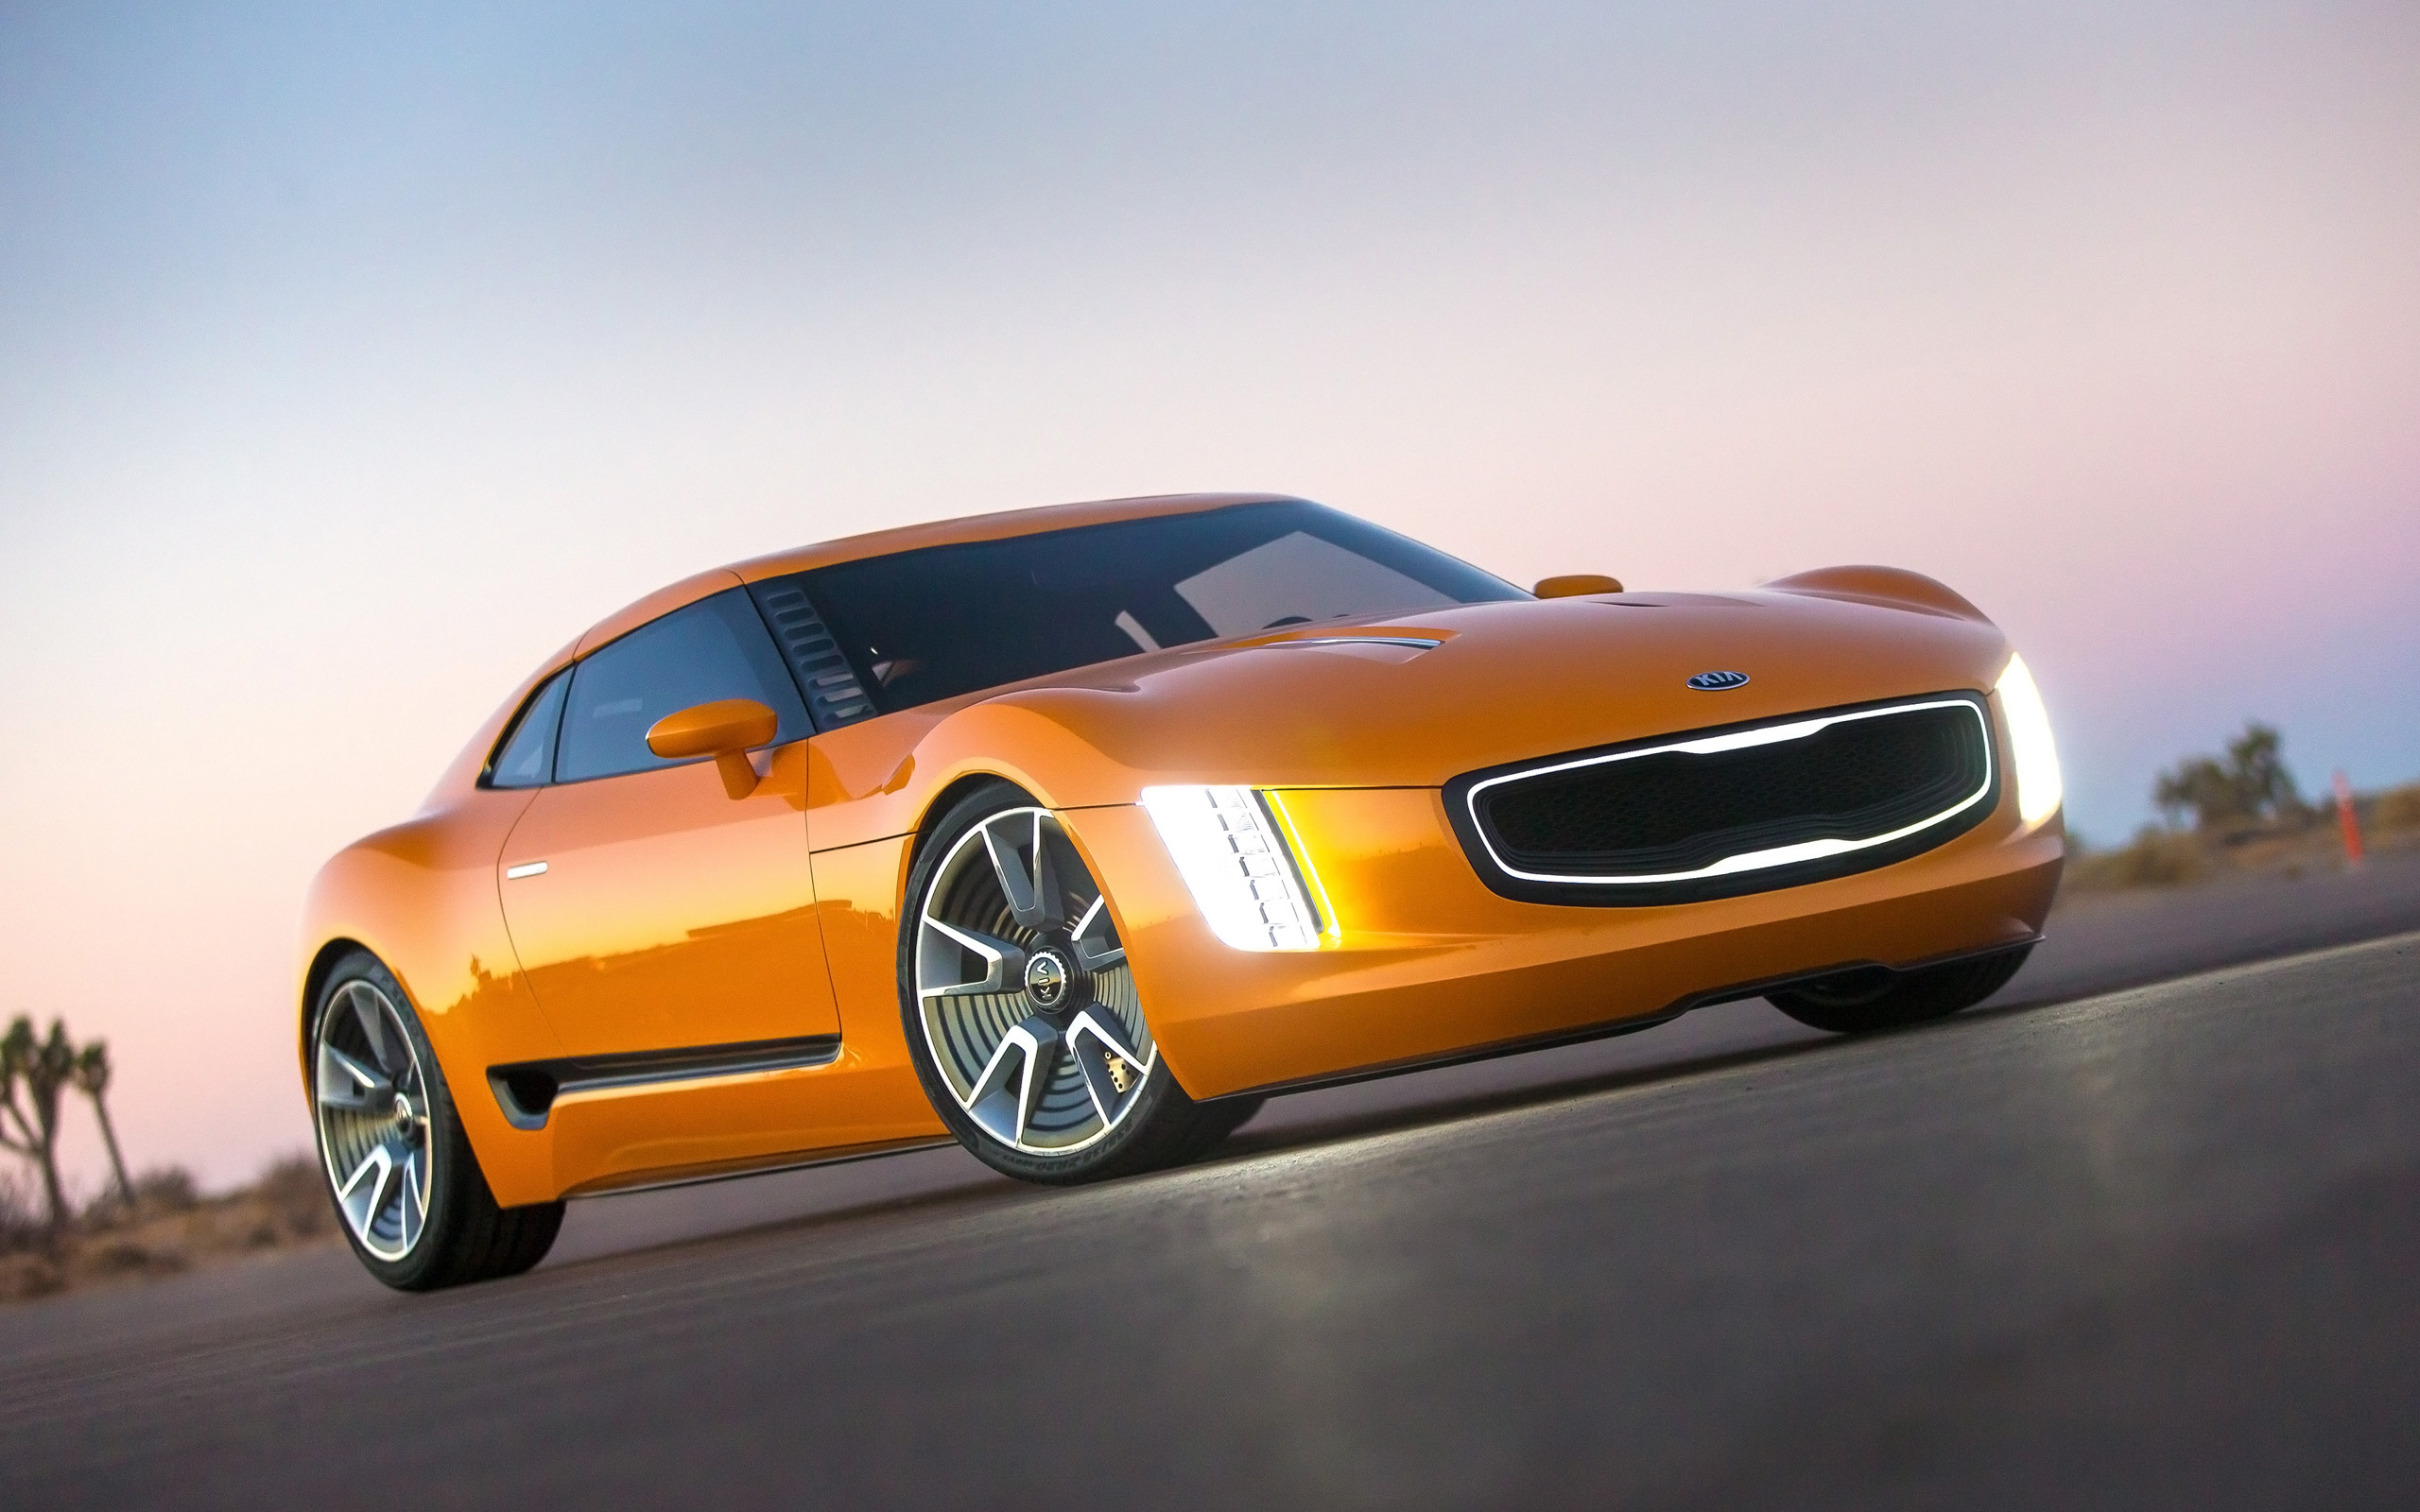 2019 Kia GT4 Stinger Concept photo - 3